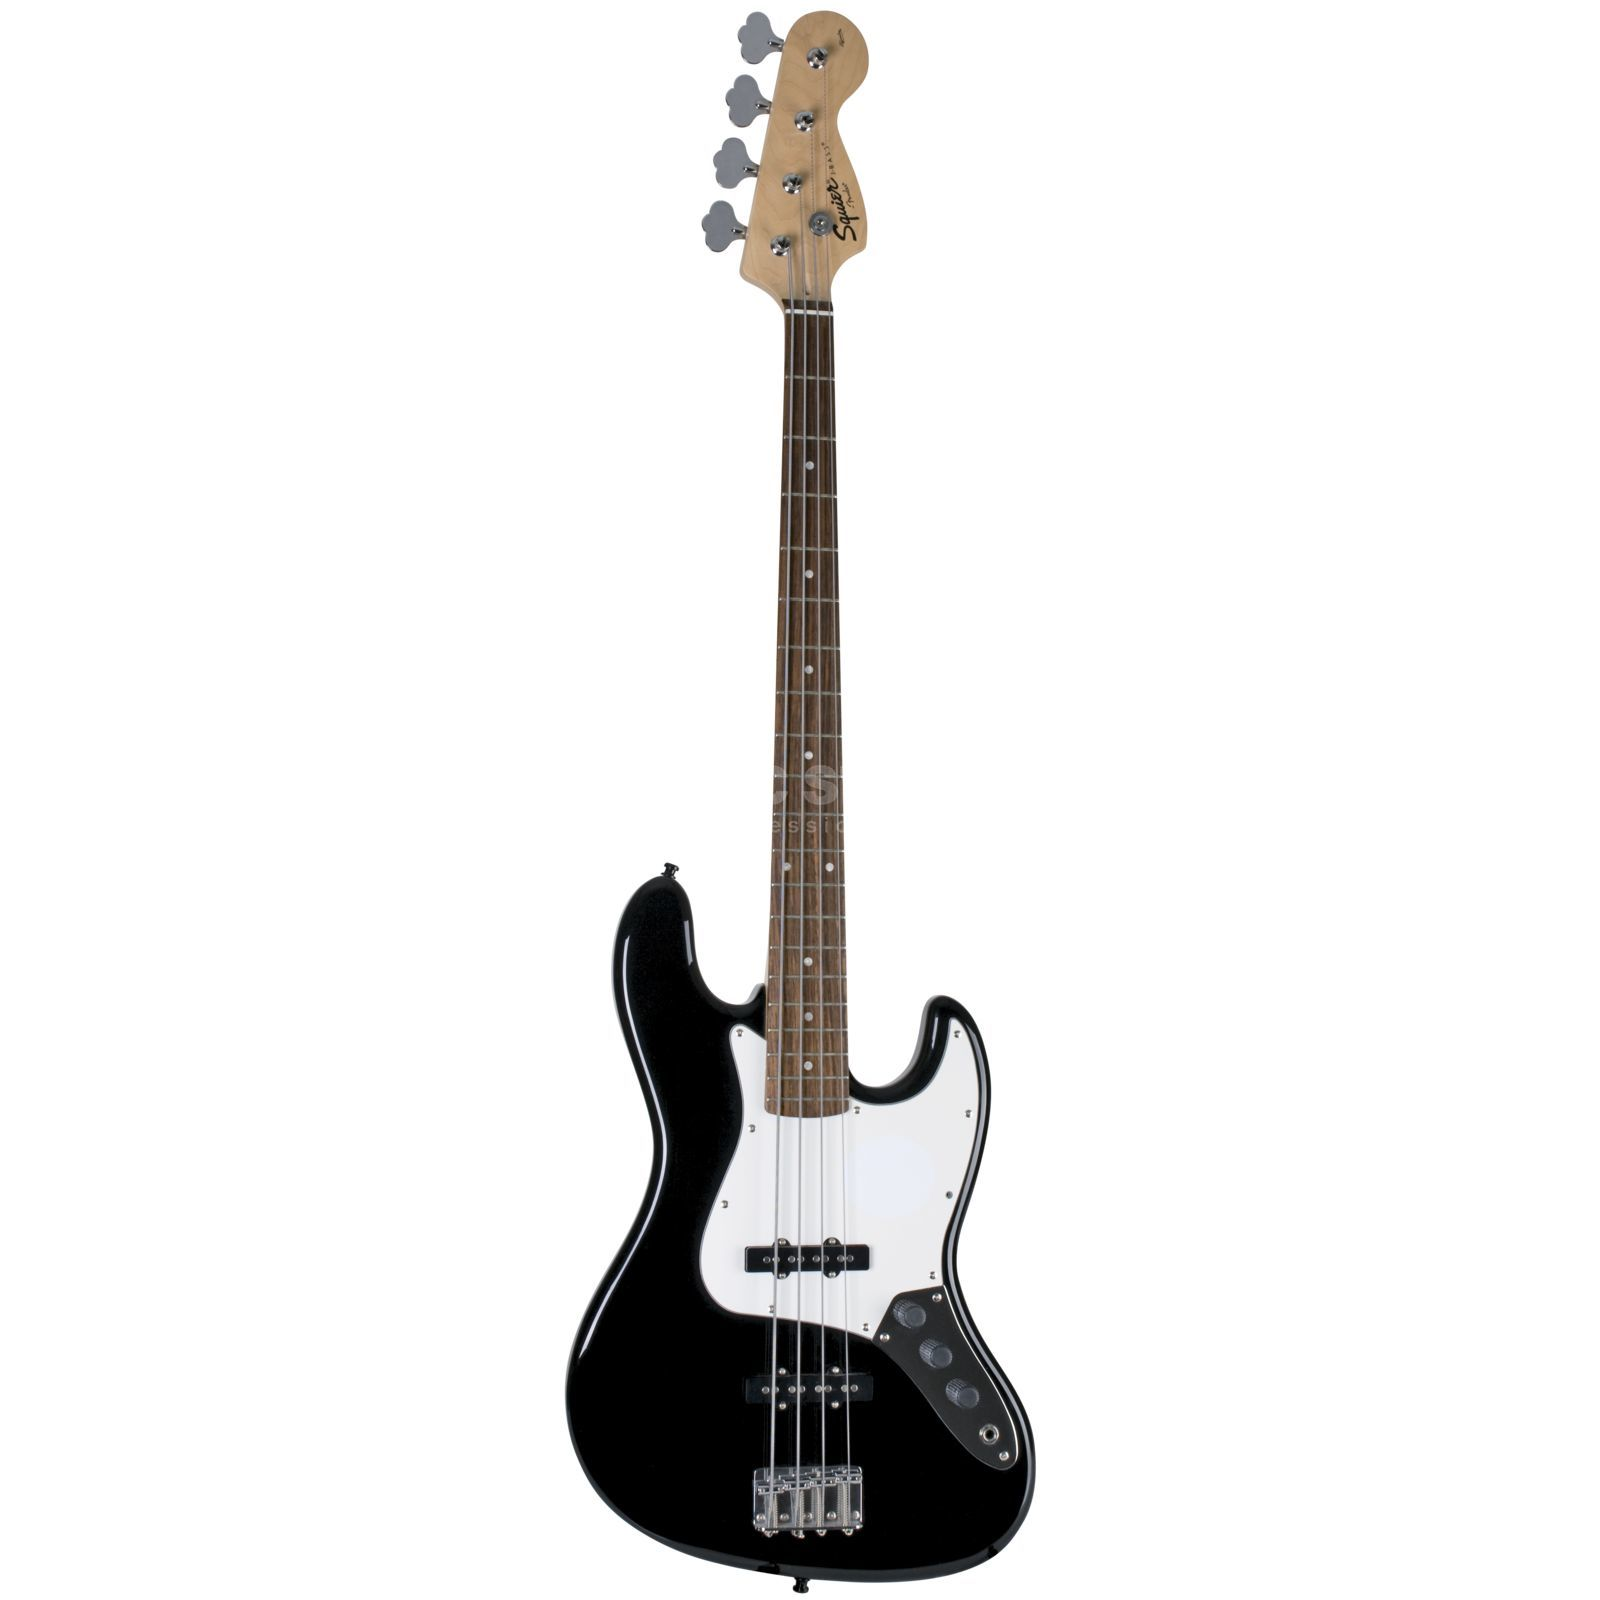 Fender Squier Squier Affinity Jazz Bass RW Black Product Image